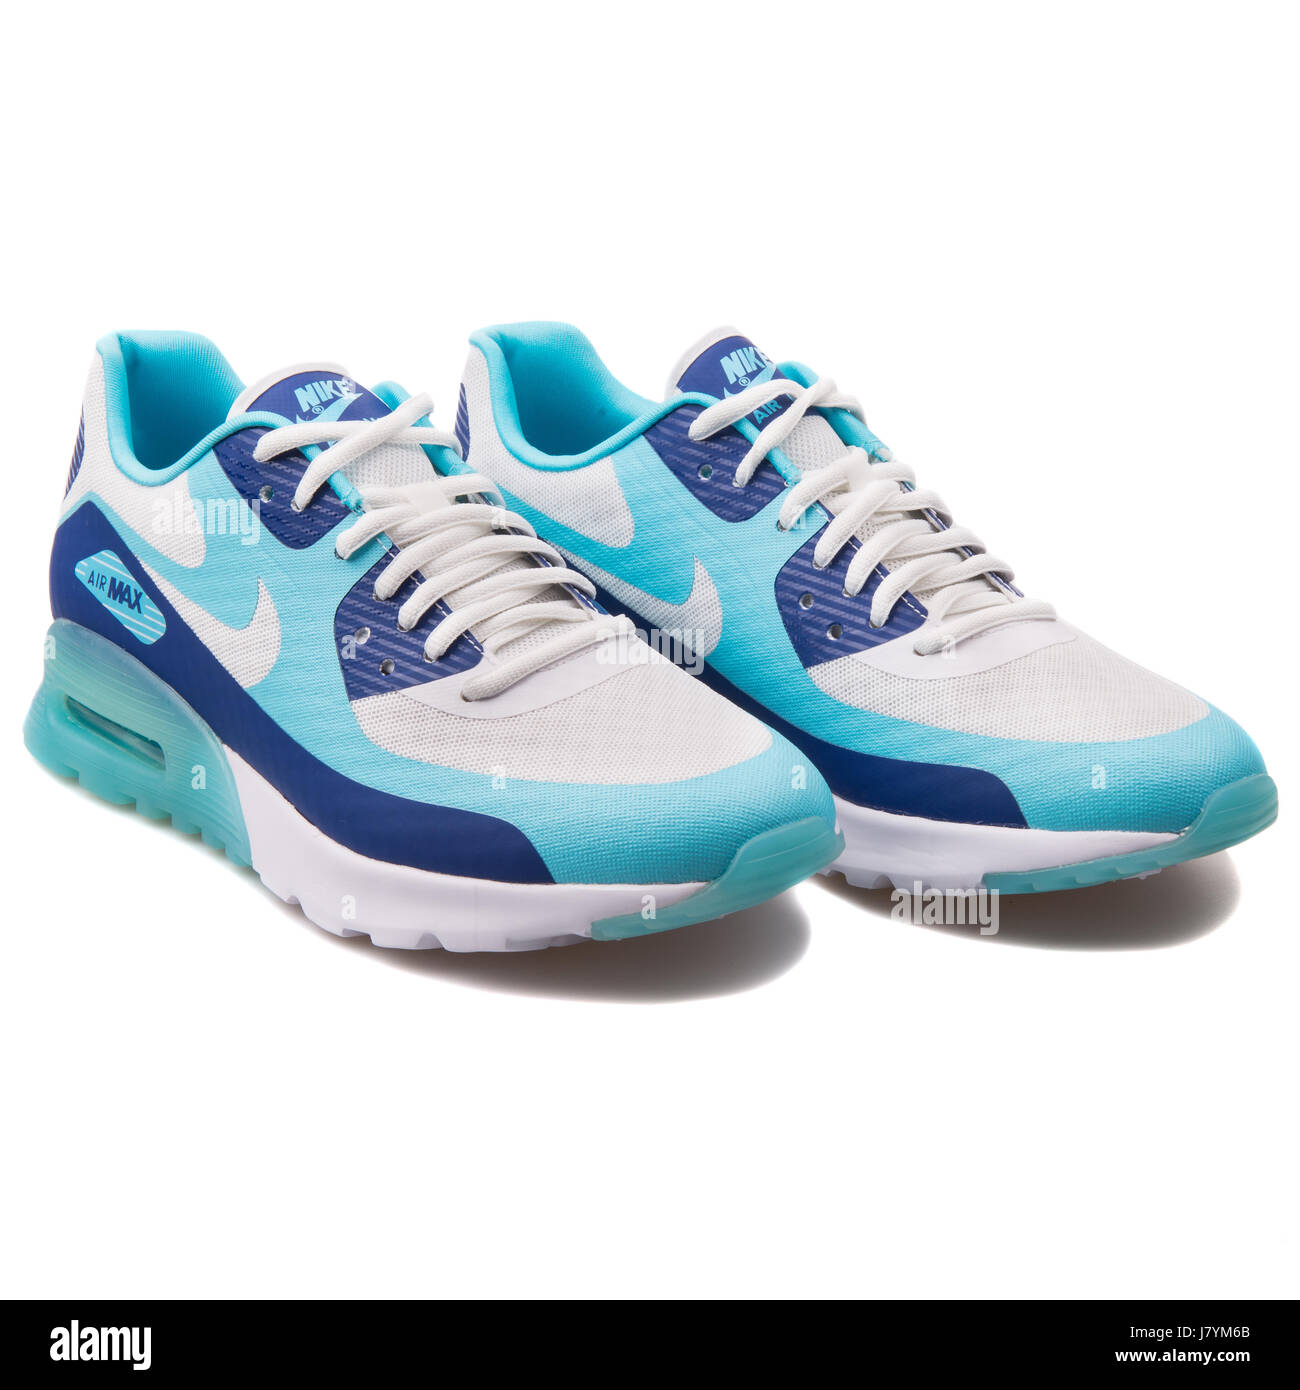 Nike W Air Max 90 Ultra BR Deep Royal Blue, Turquoise and